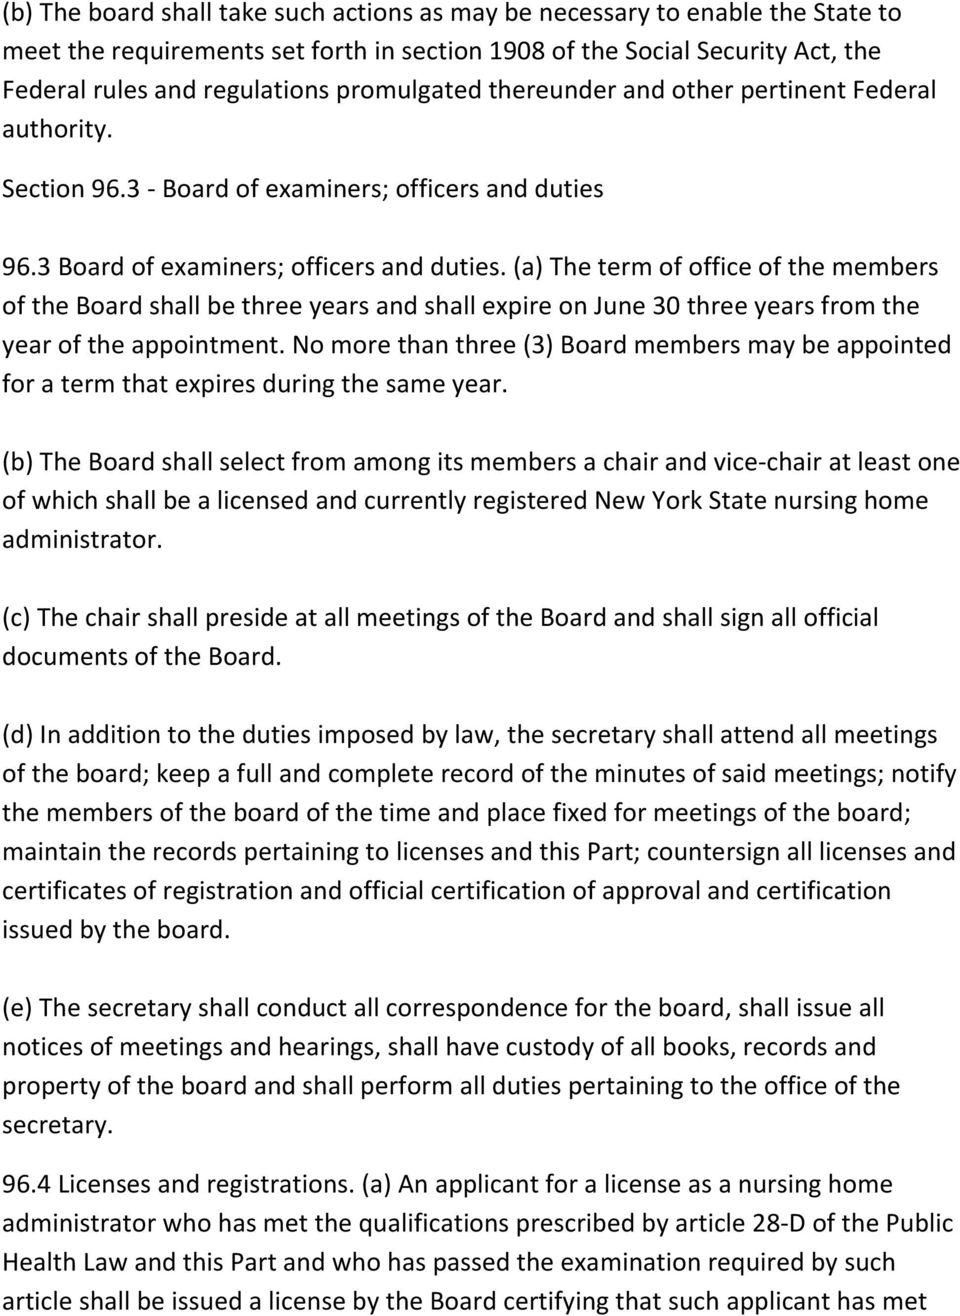 (a) The term of office of the members of the Board shall be three years and shall expire on June 30 three years from the year of the appointment.